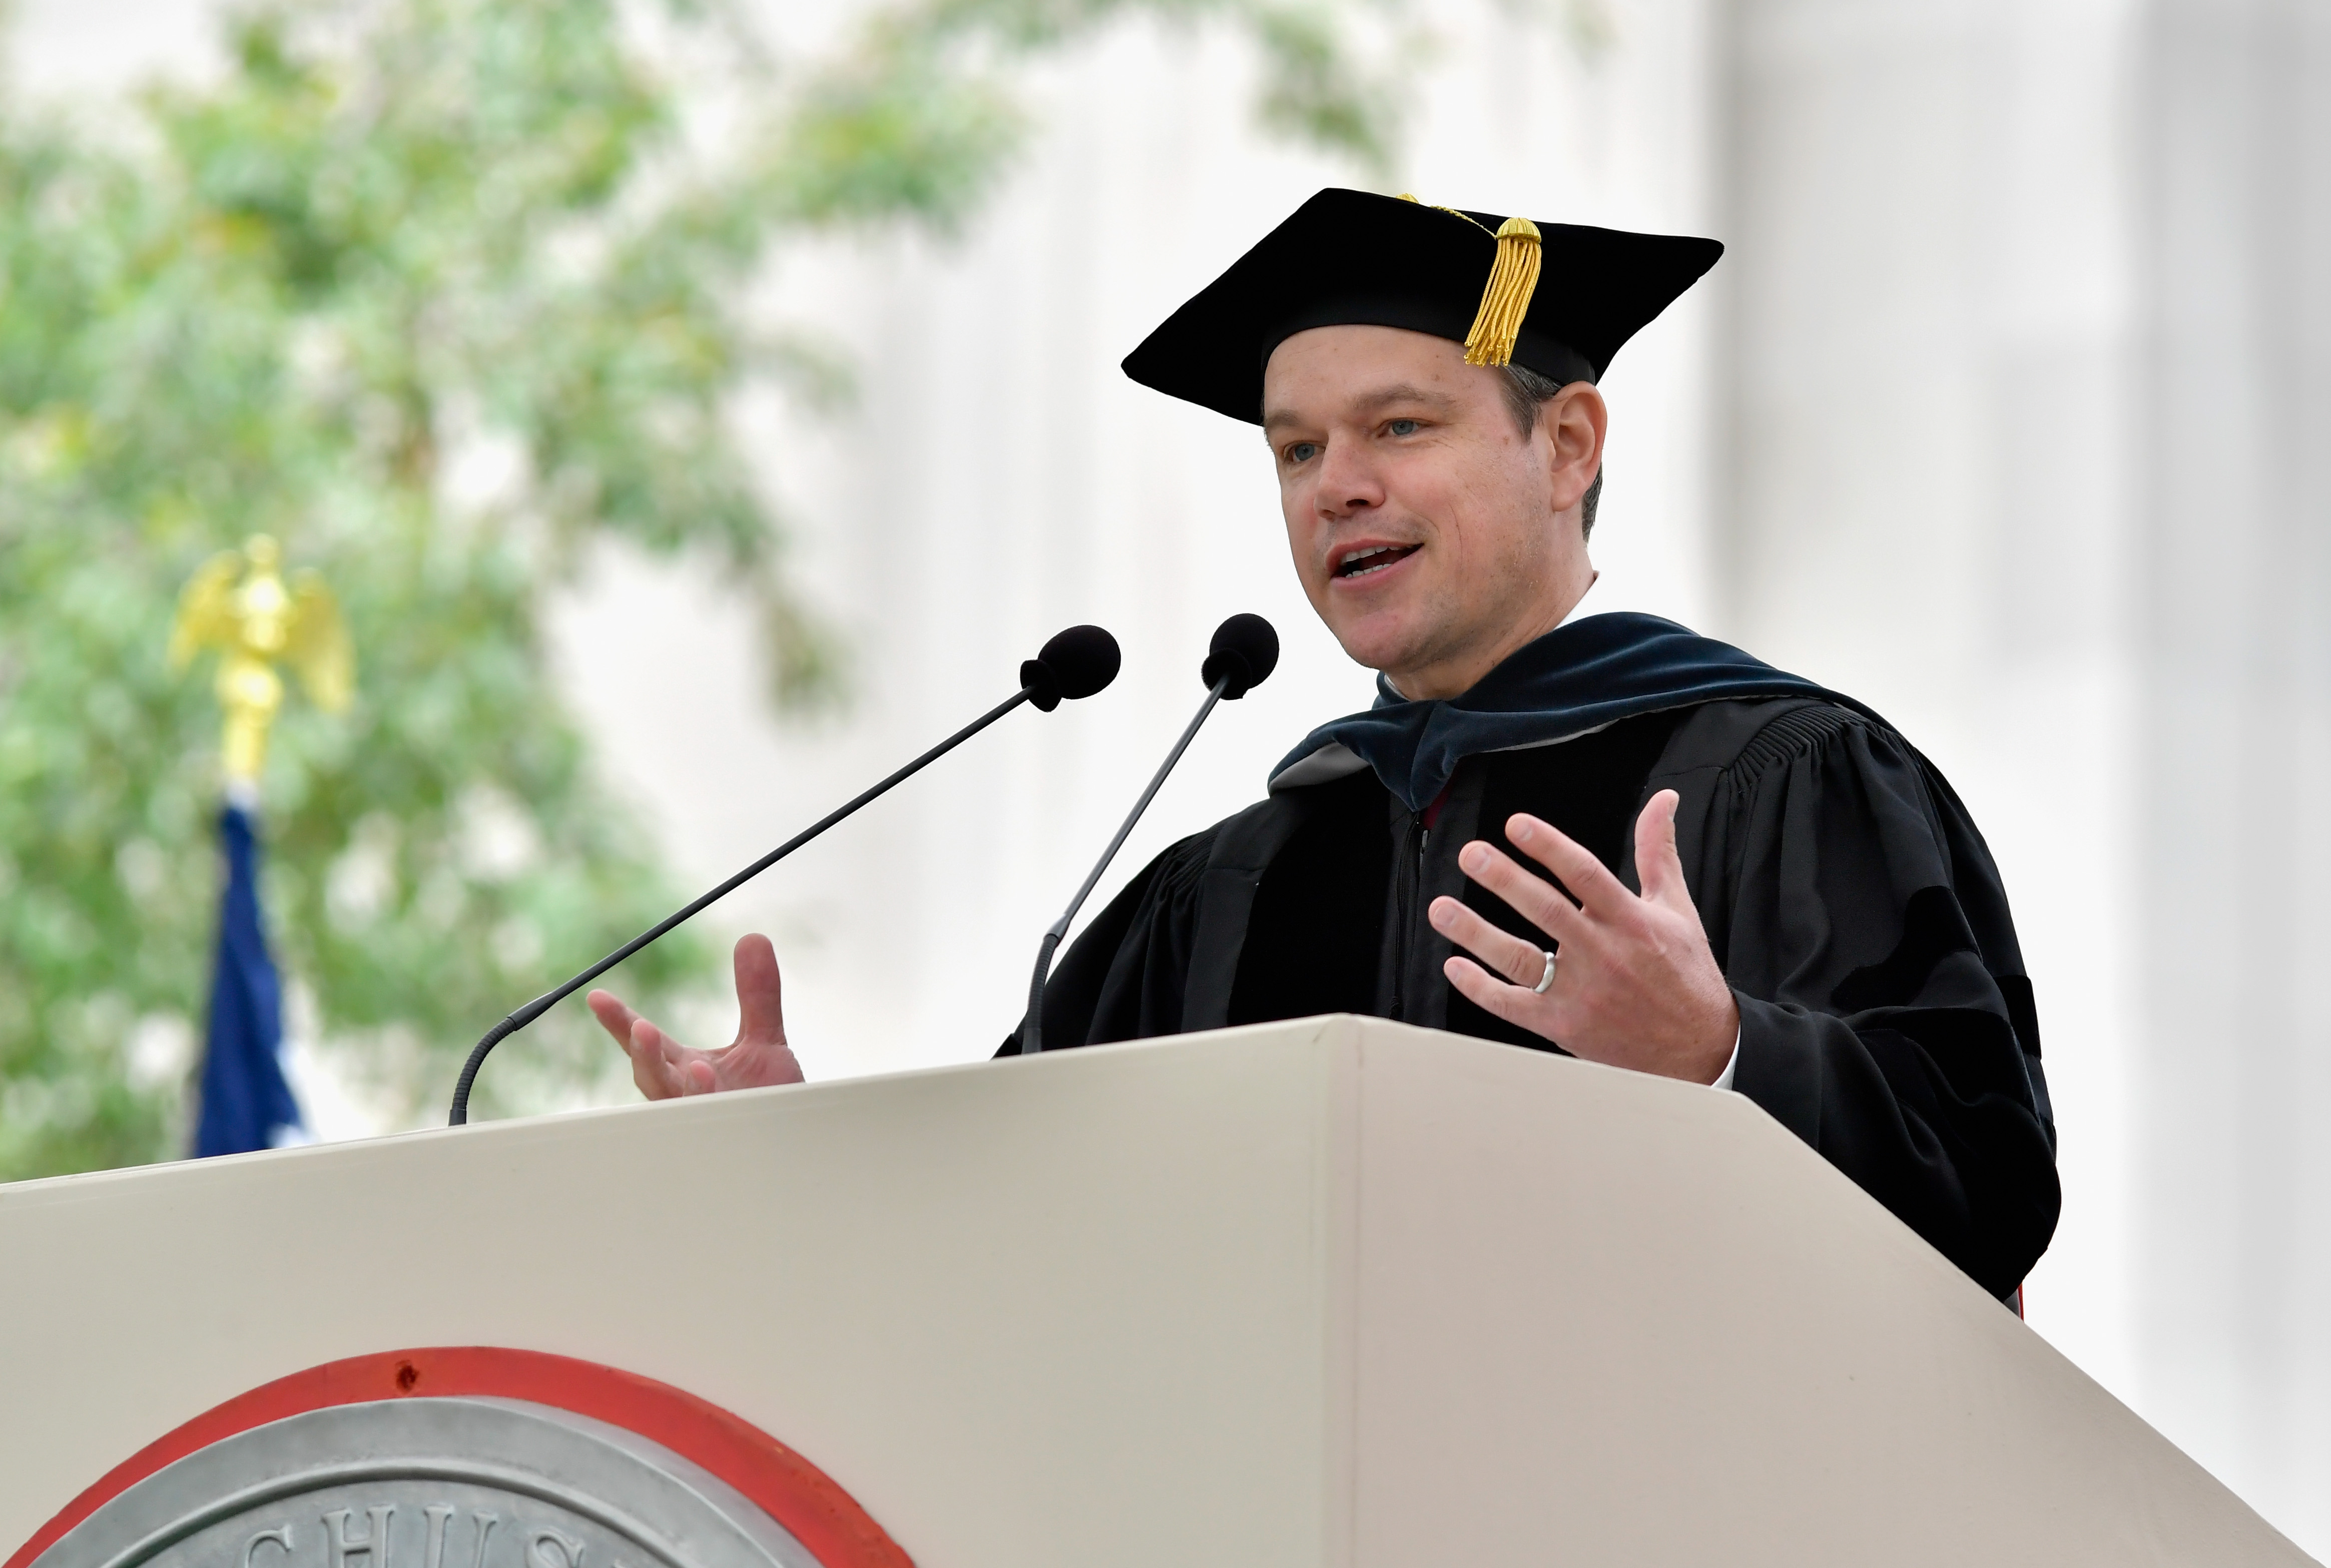 Matt Damon delivers the commencement address to graduating students at MIT on June 3 in Cambridge, Massachusetts.